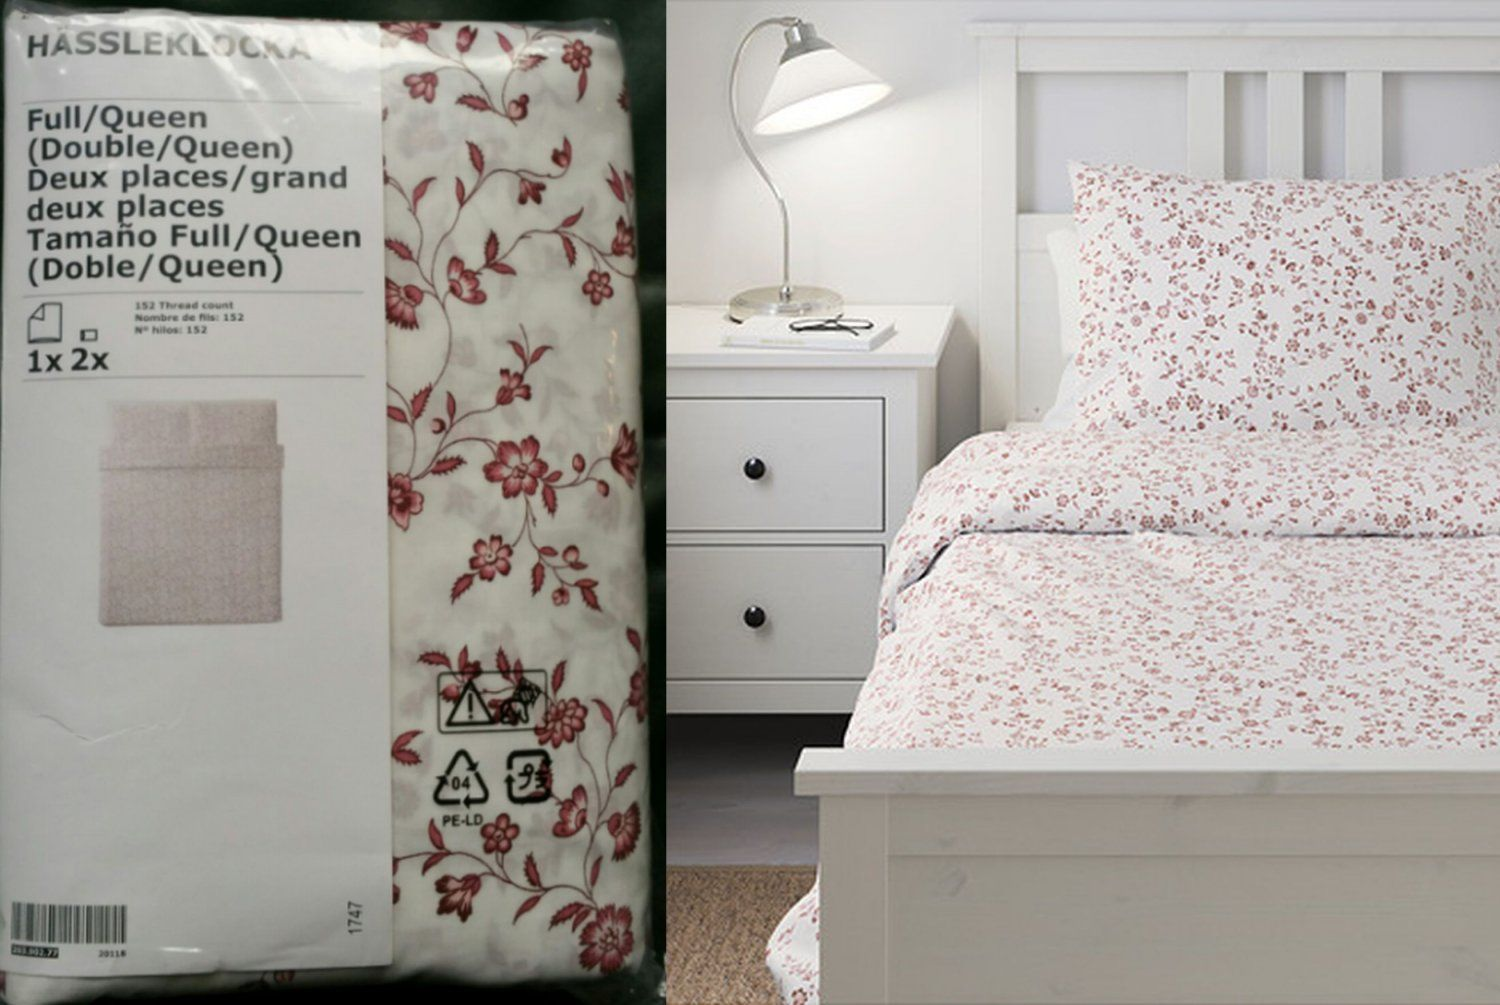 Ikea Hassleklocka Queen Full Duvet Cover And Pillowcases Set Floral Red White Colonial Hassleklocka Ikea Duvet Ikea Home Full Duvet Cover